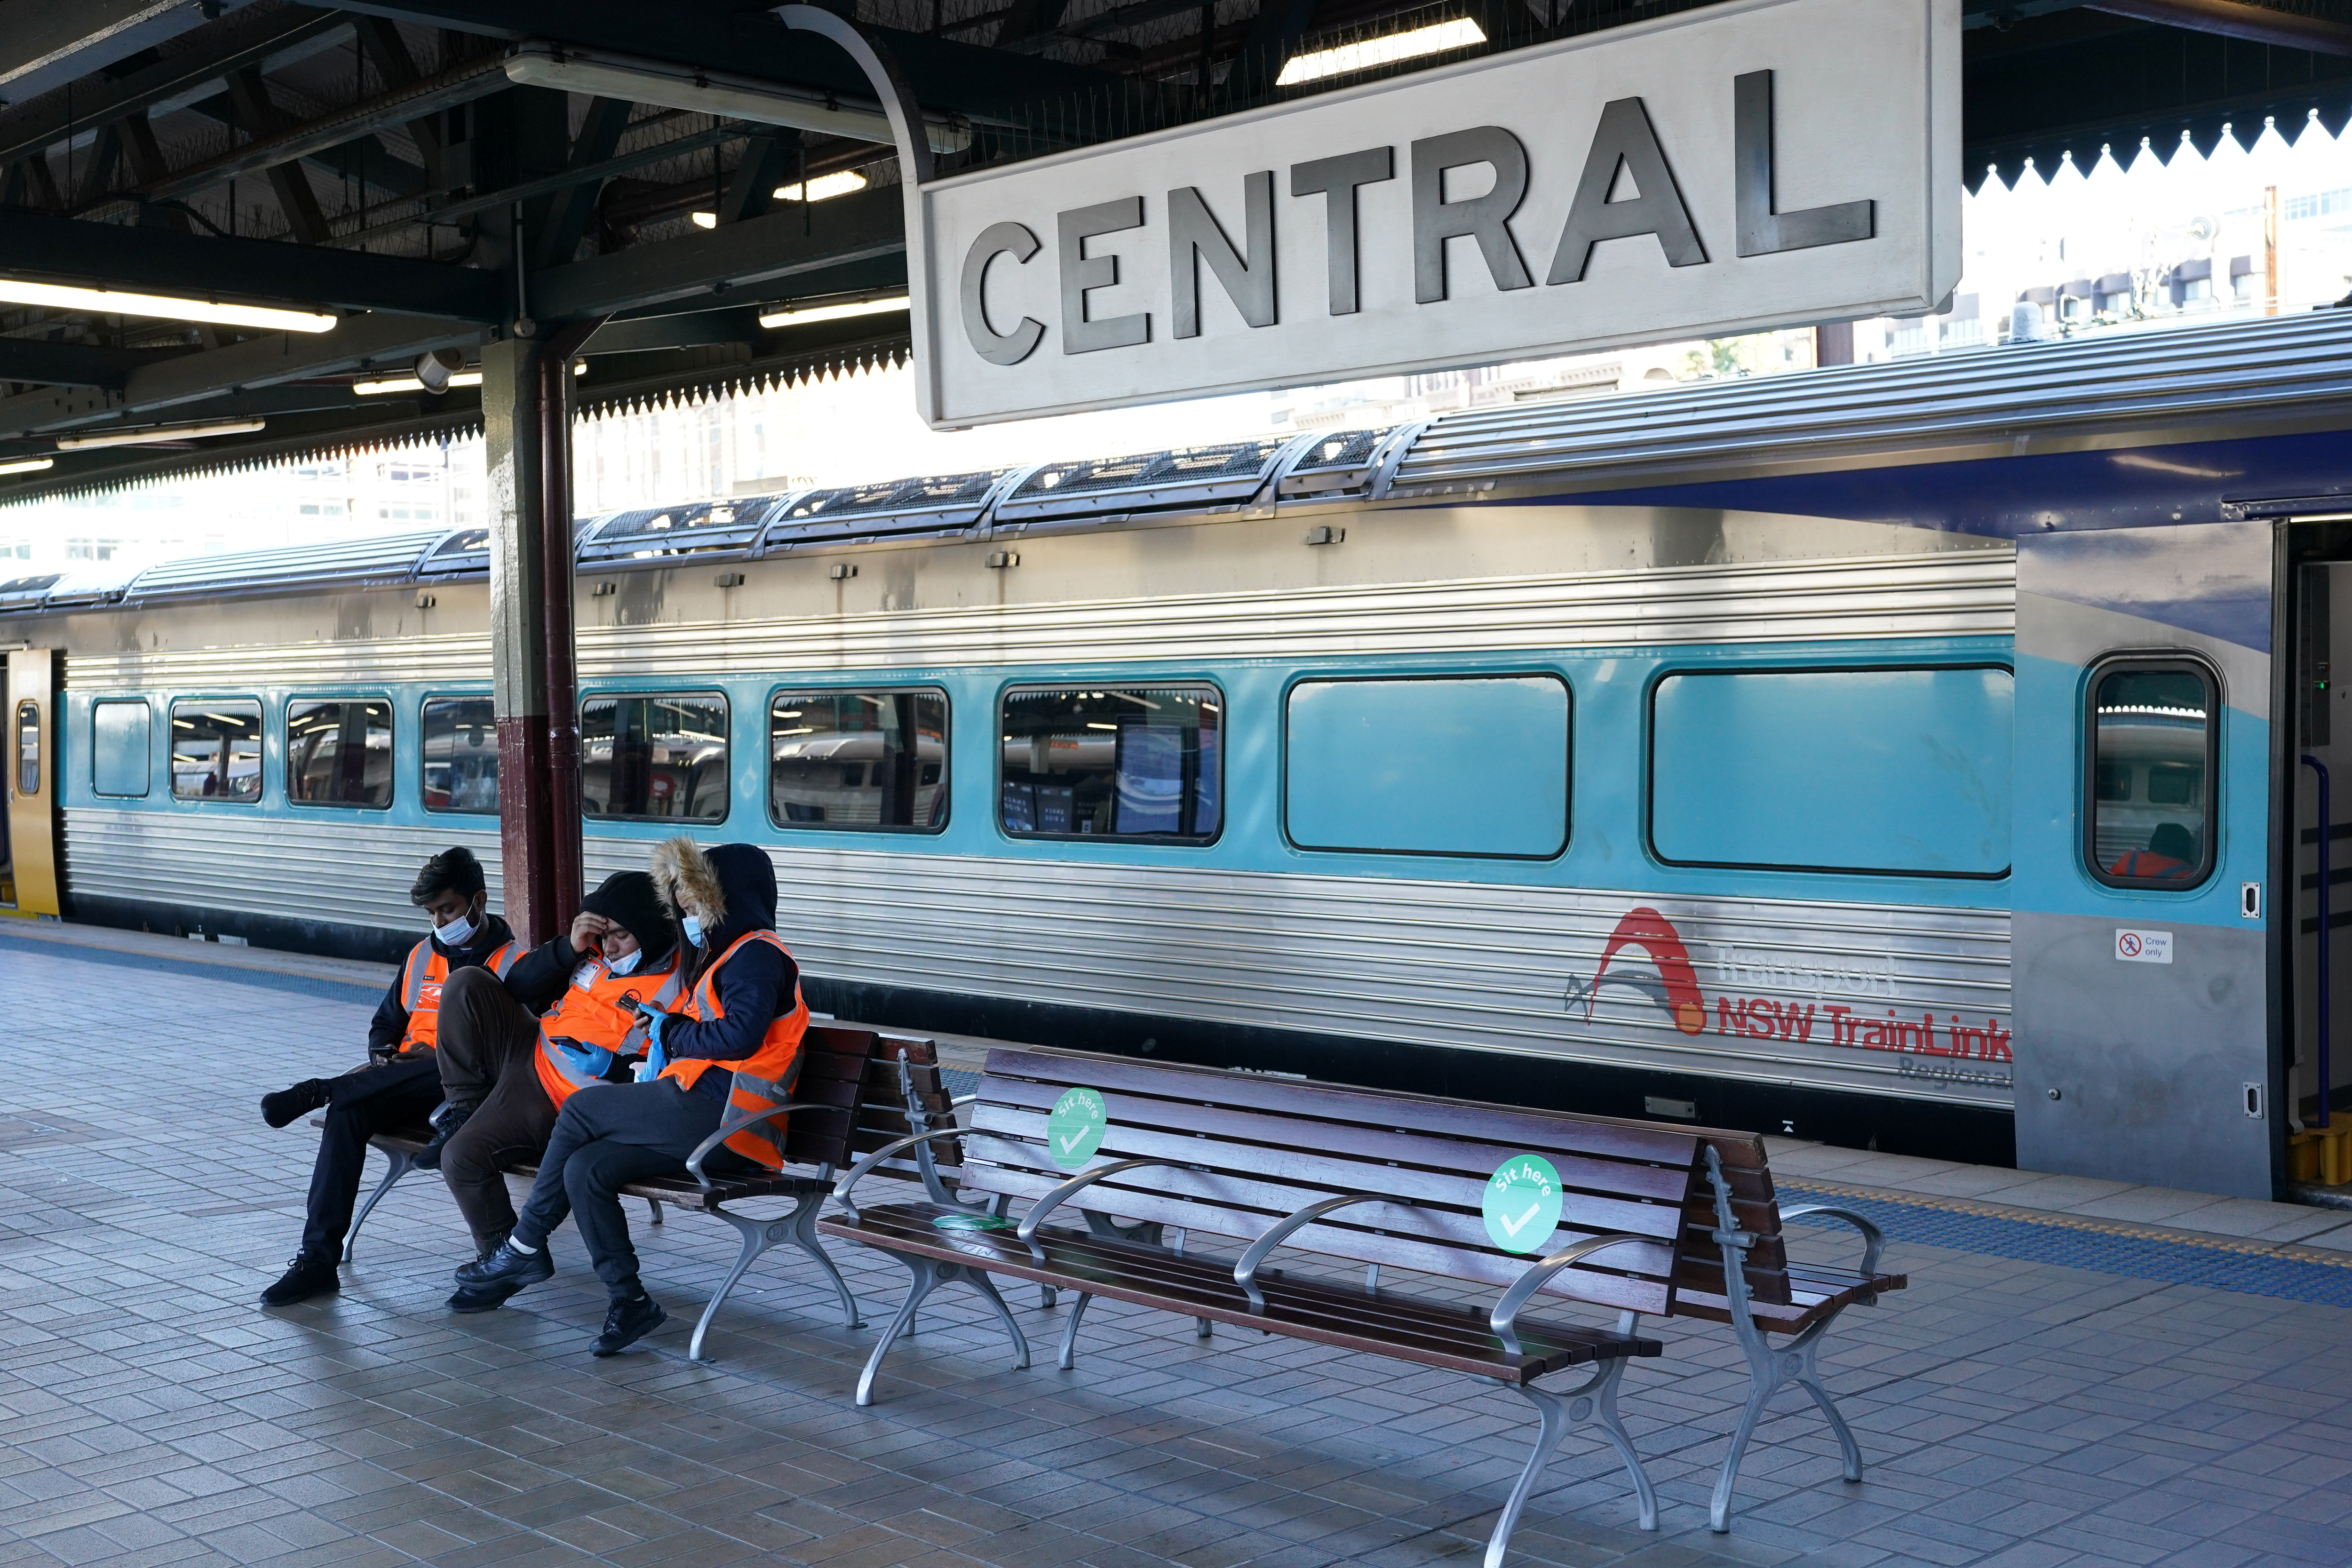 Transport workers sit together on a train platform devoid of passengers at Central Station in the city centre as the City of Sydney and three adjacent local government areas begin a week-long lockdown to curb an outbreak of the coronavirus disease (COVID-19) in Sydney, Australia, June 26, 2021.  REUTERS/Loren Elliott